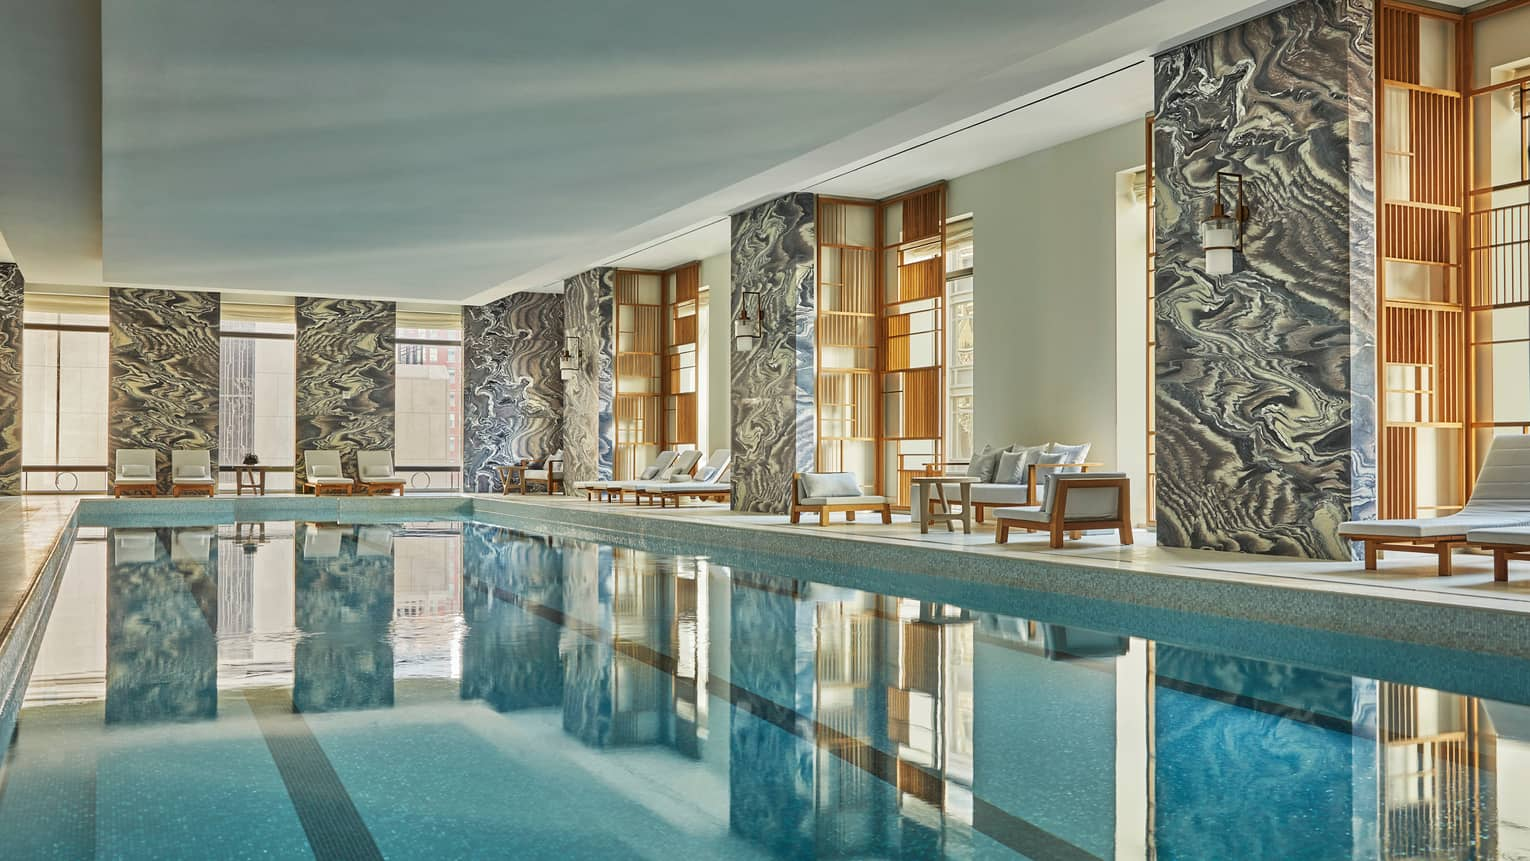 Black-and-white dramatic stone marble pillars, windows around long indoor swimming pool